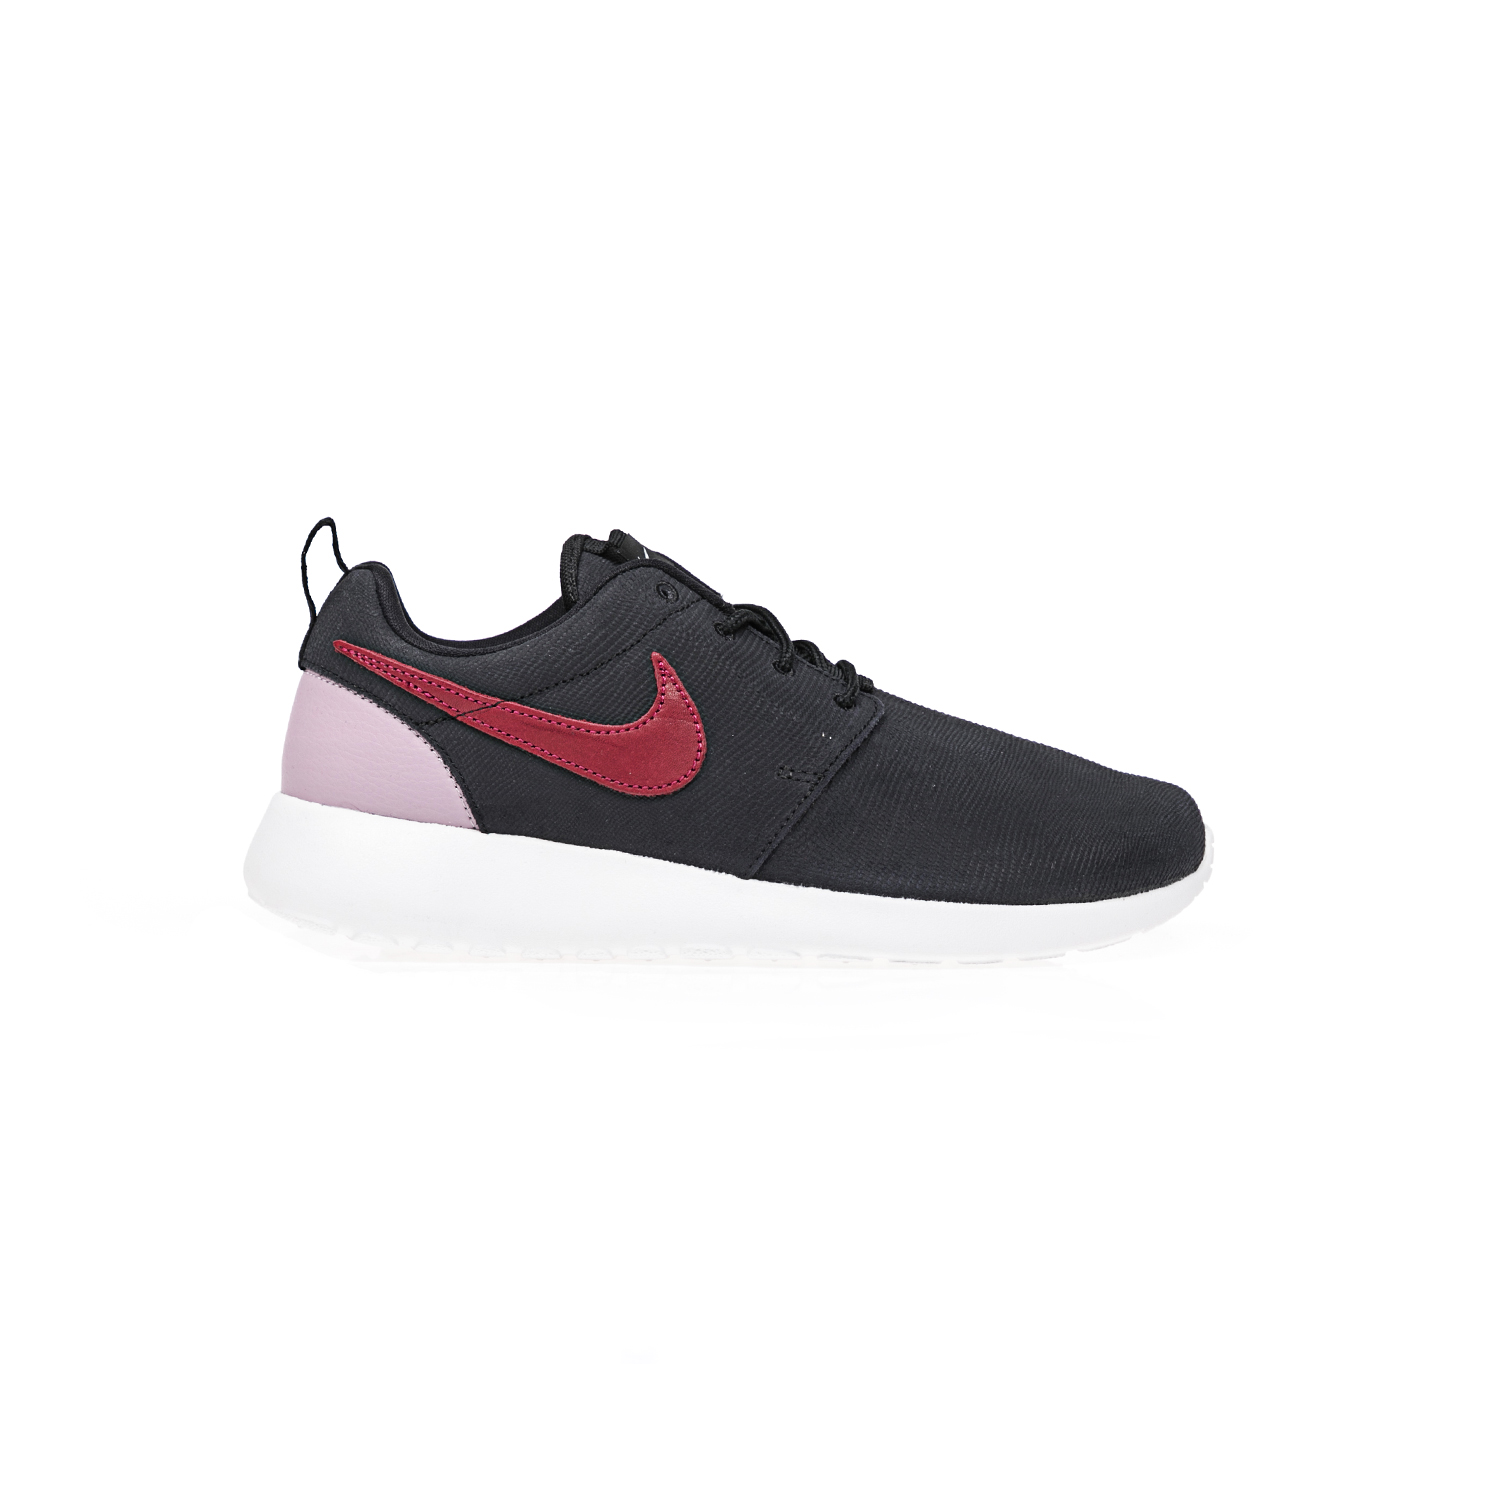 NIKE – Γυναικεία παπούτσια NIKE ROSHE ONE SUEDE μαύρα